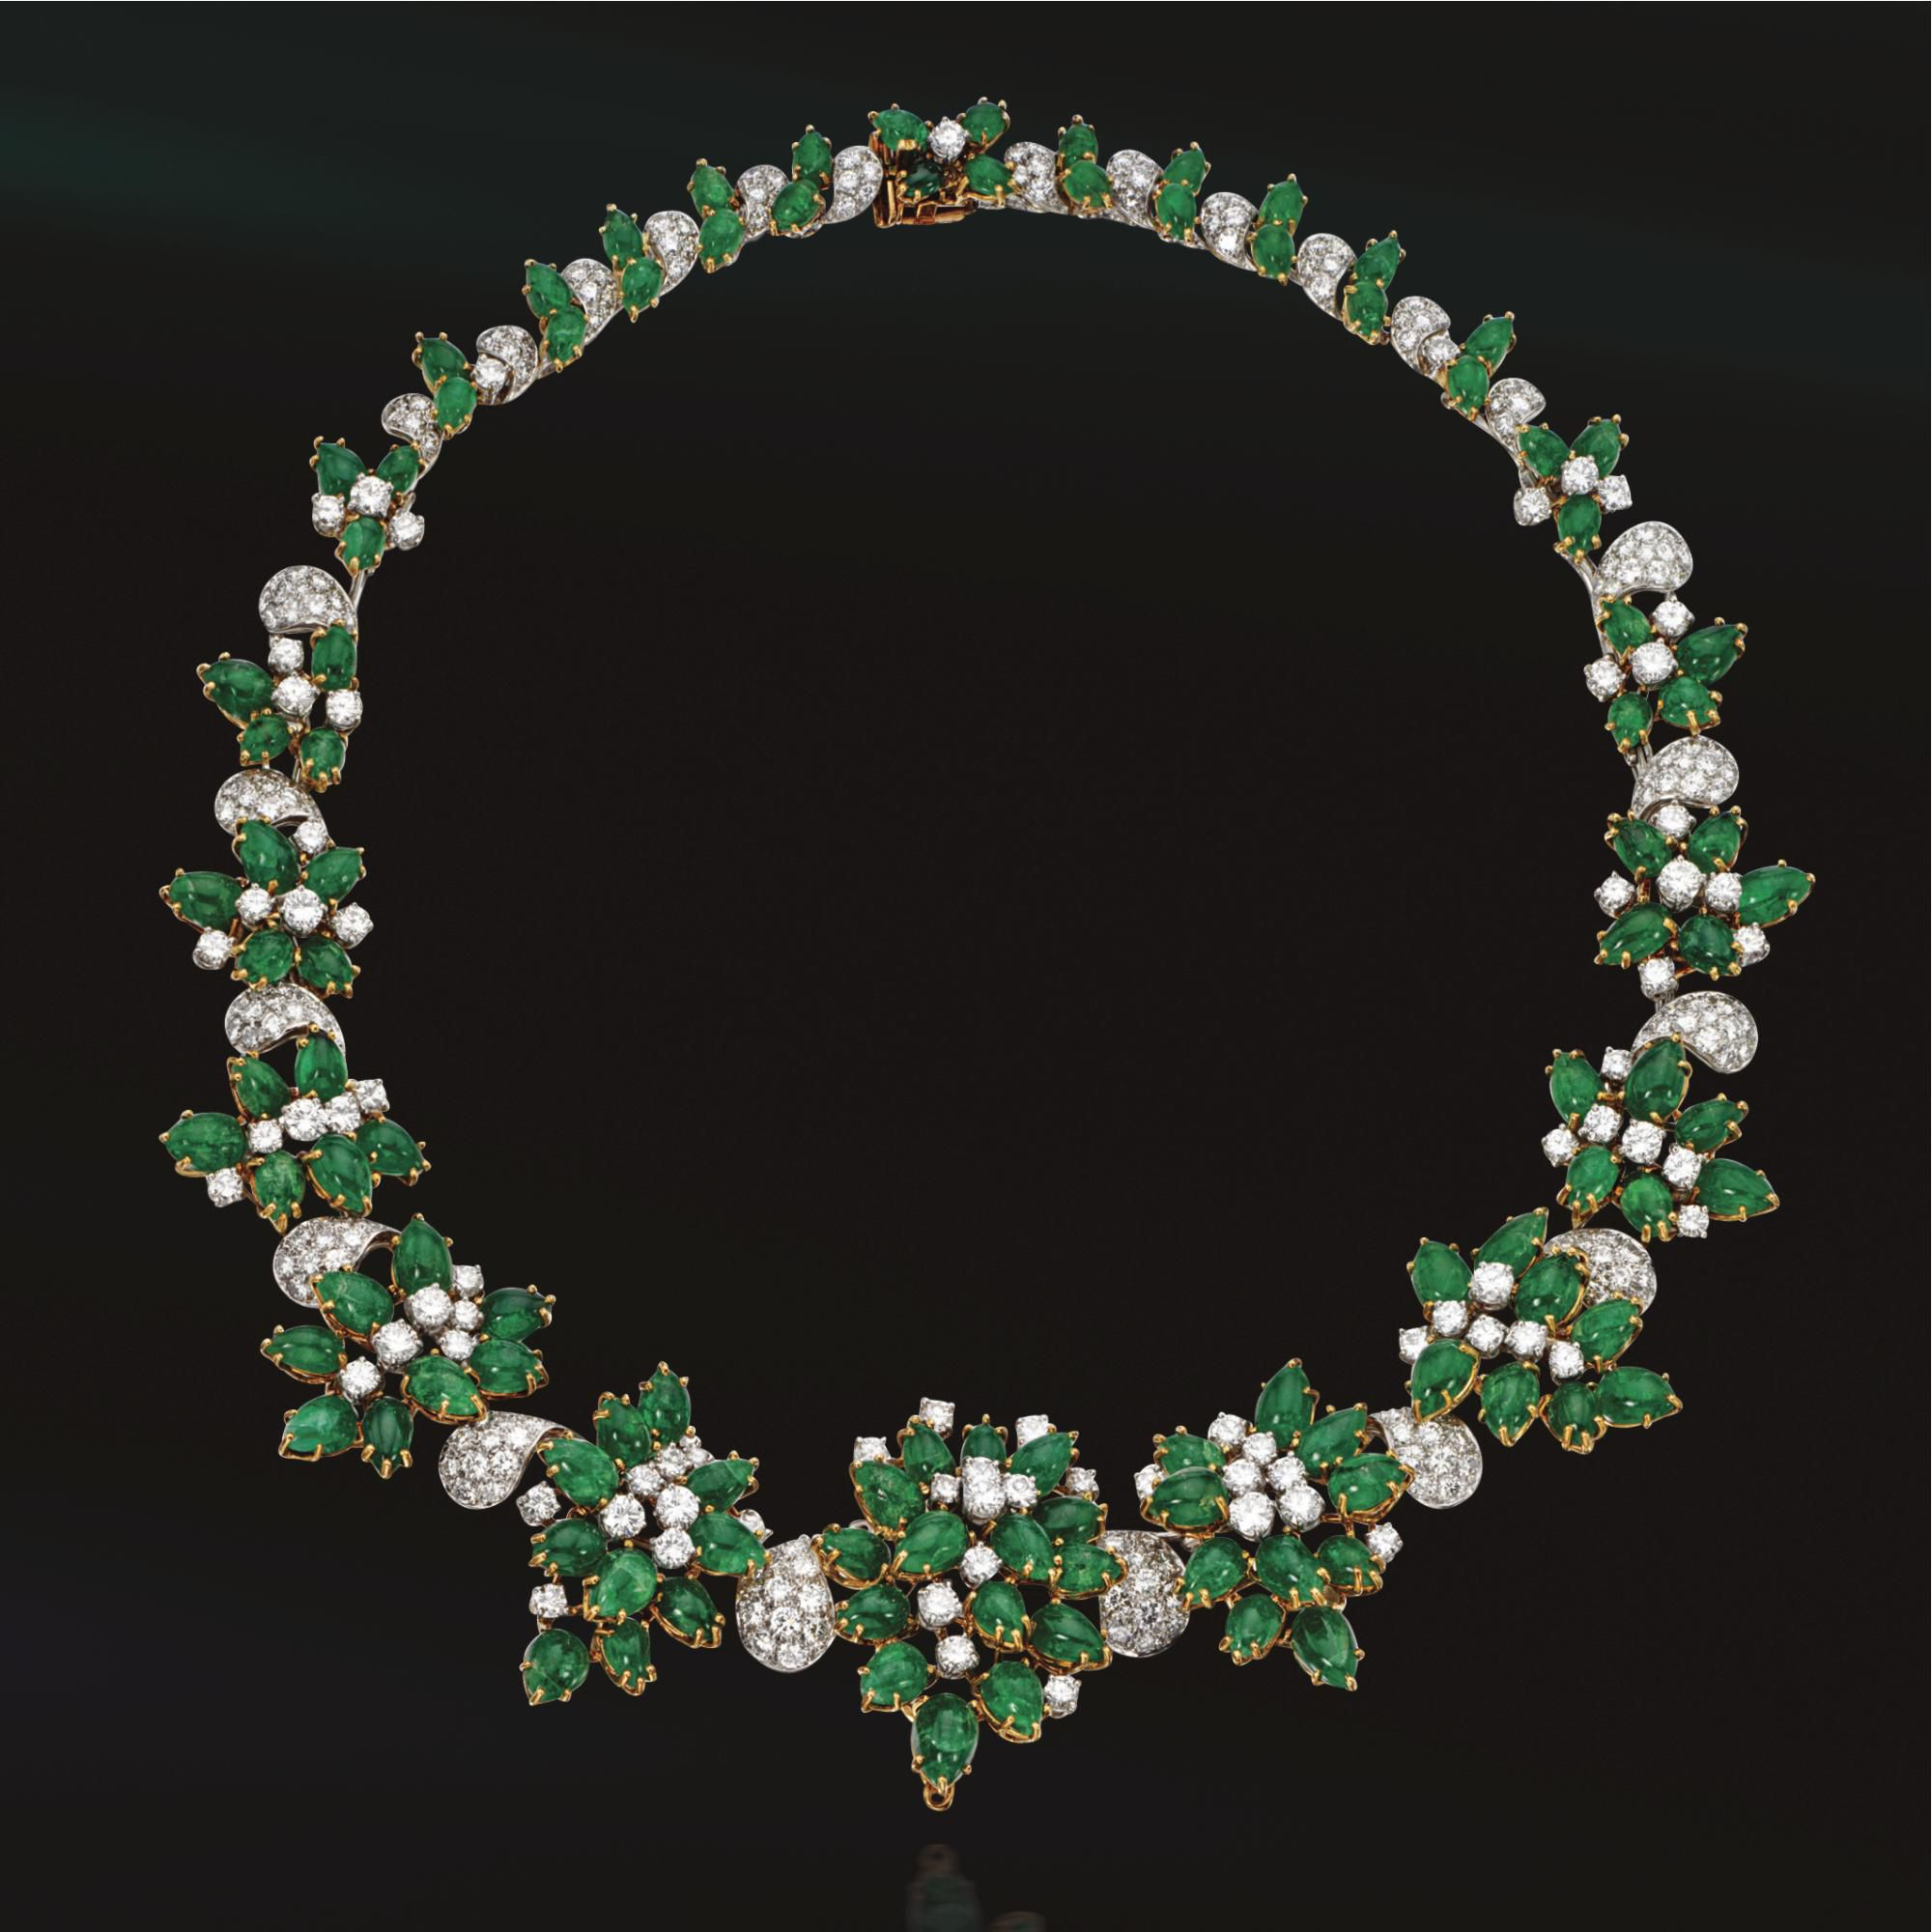 Cabochon emerald and diamond necklace, Harry Winston | lot | Sotheby's